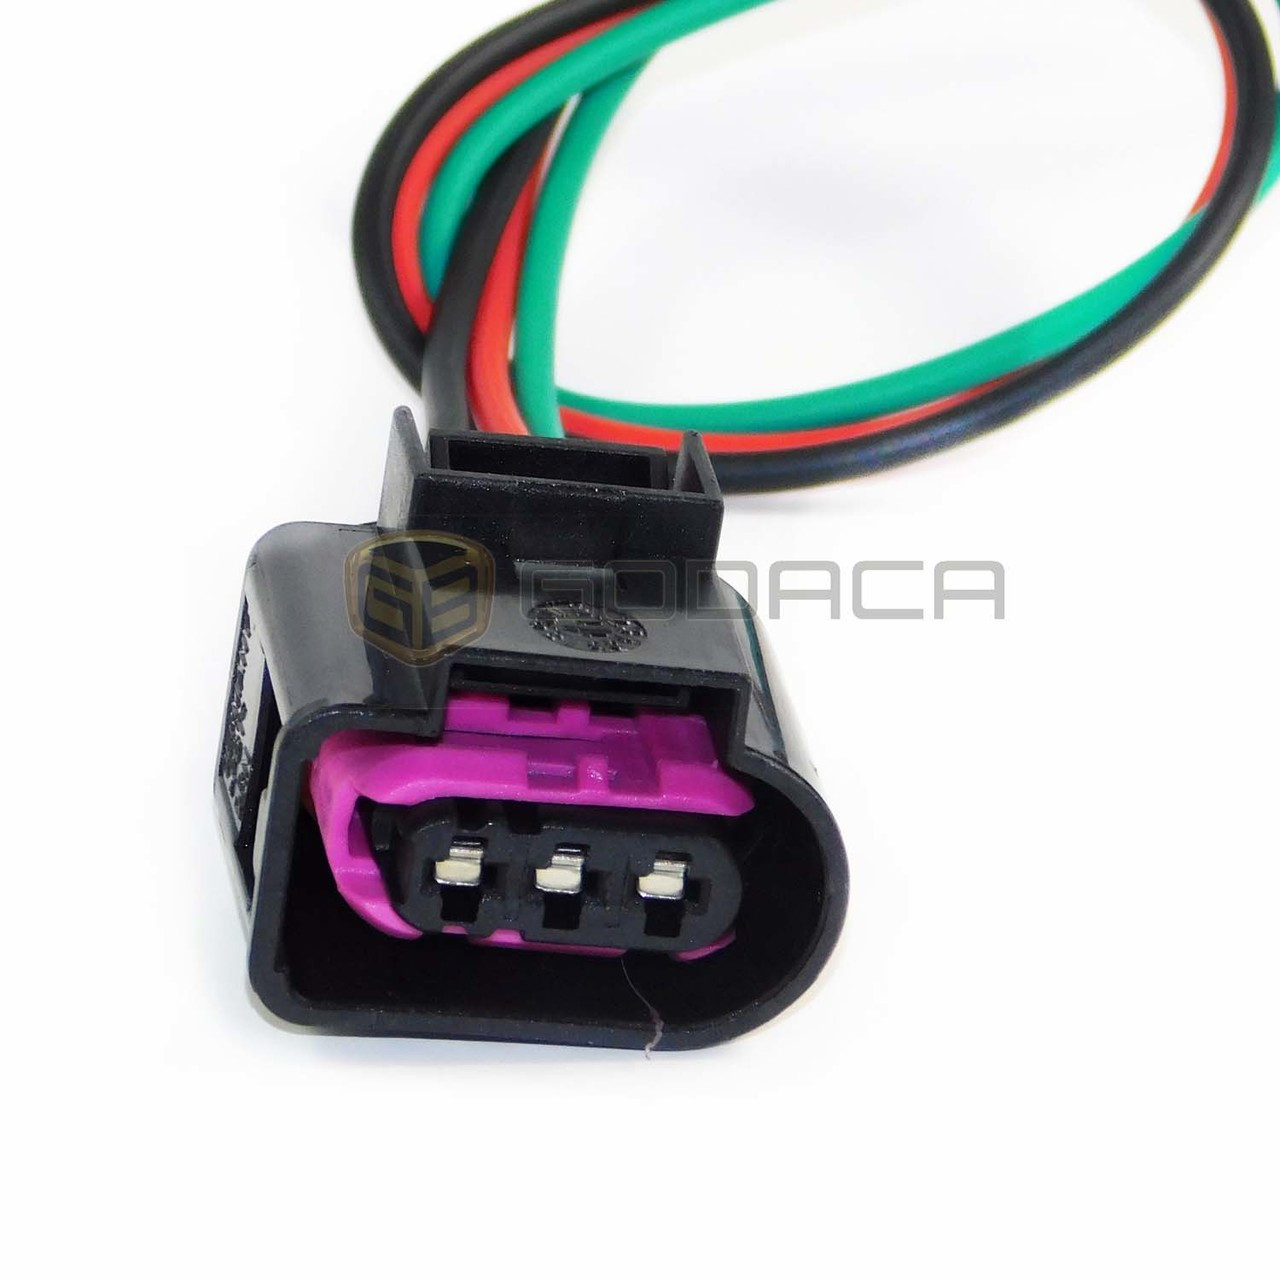 1x Connector Wiring Harness 3 pin 3-way for Audi Volkswagen - Godaca on terminal block pin connector, tube pin connector, 10 pin connector, 6 pin molex connector, power supply pin connector, obd 16 pin connector, 14 pin connector, spring pin connector, ecu pin connector, pcb pin connector, seal pin connector, speaker pin connector, plug pin connector,